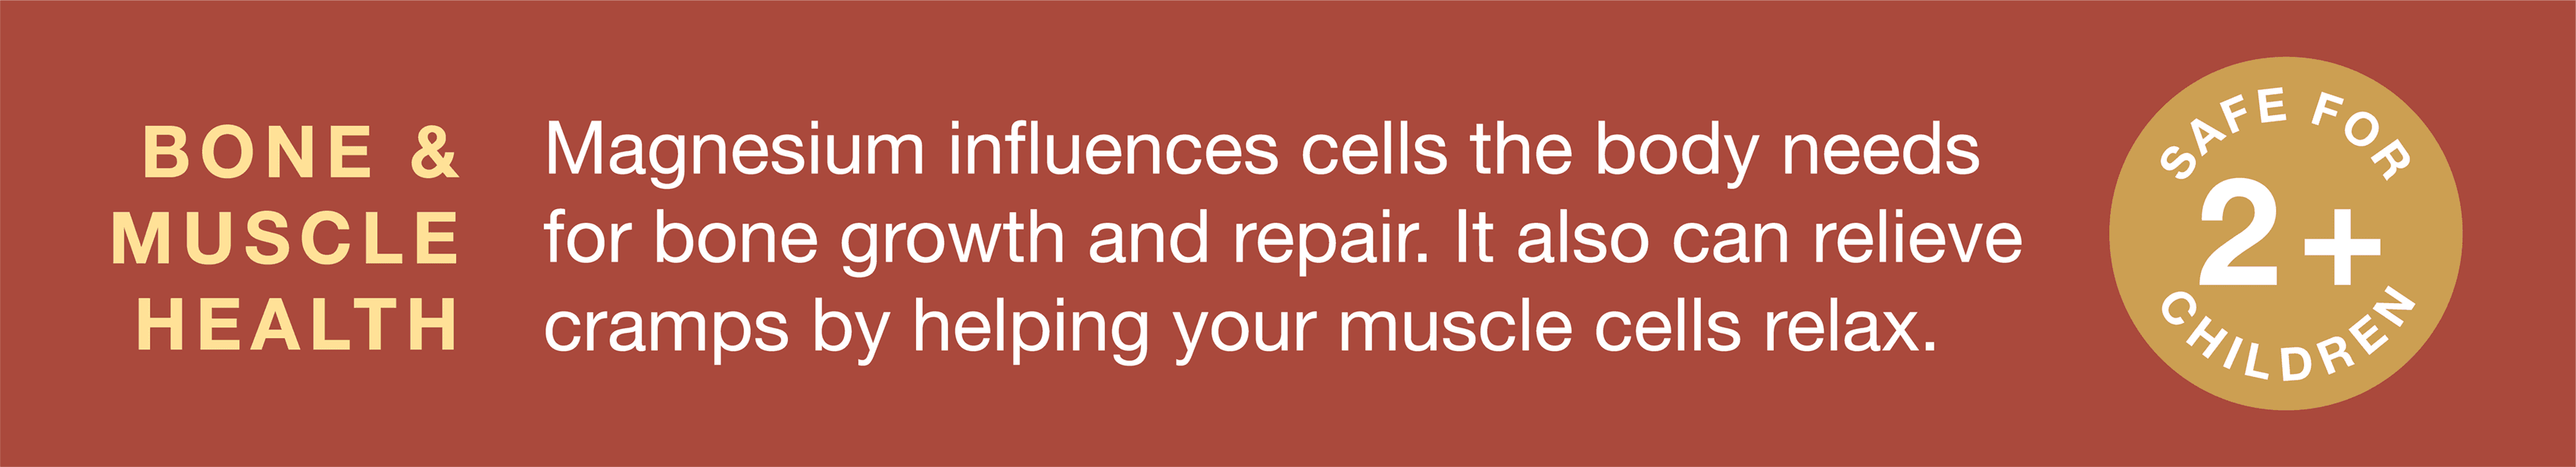 Magnesium influences cells for bone growth and repair, and can also relieve cramps by helping muscle cells relax.